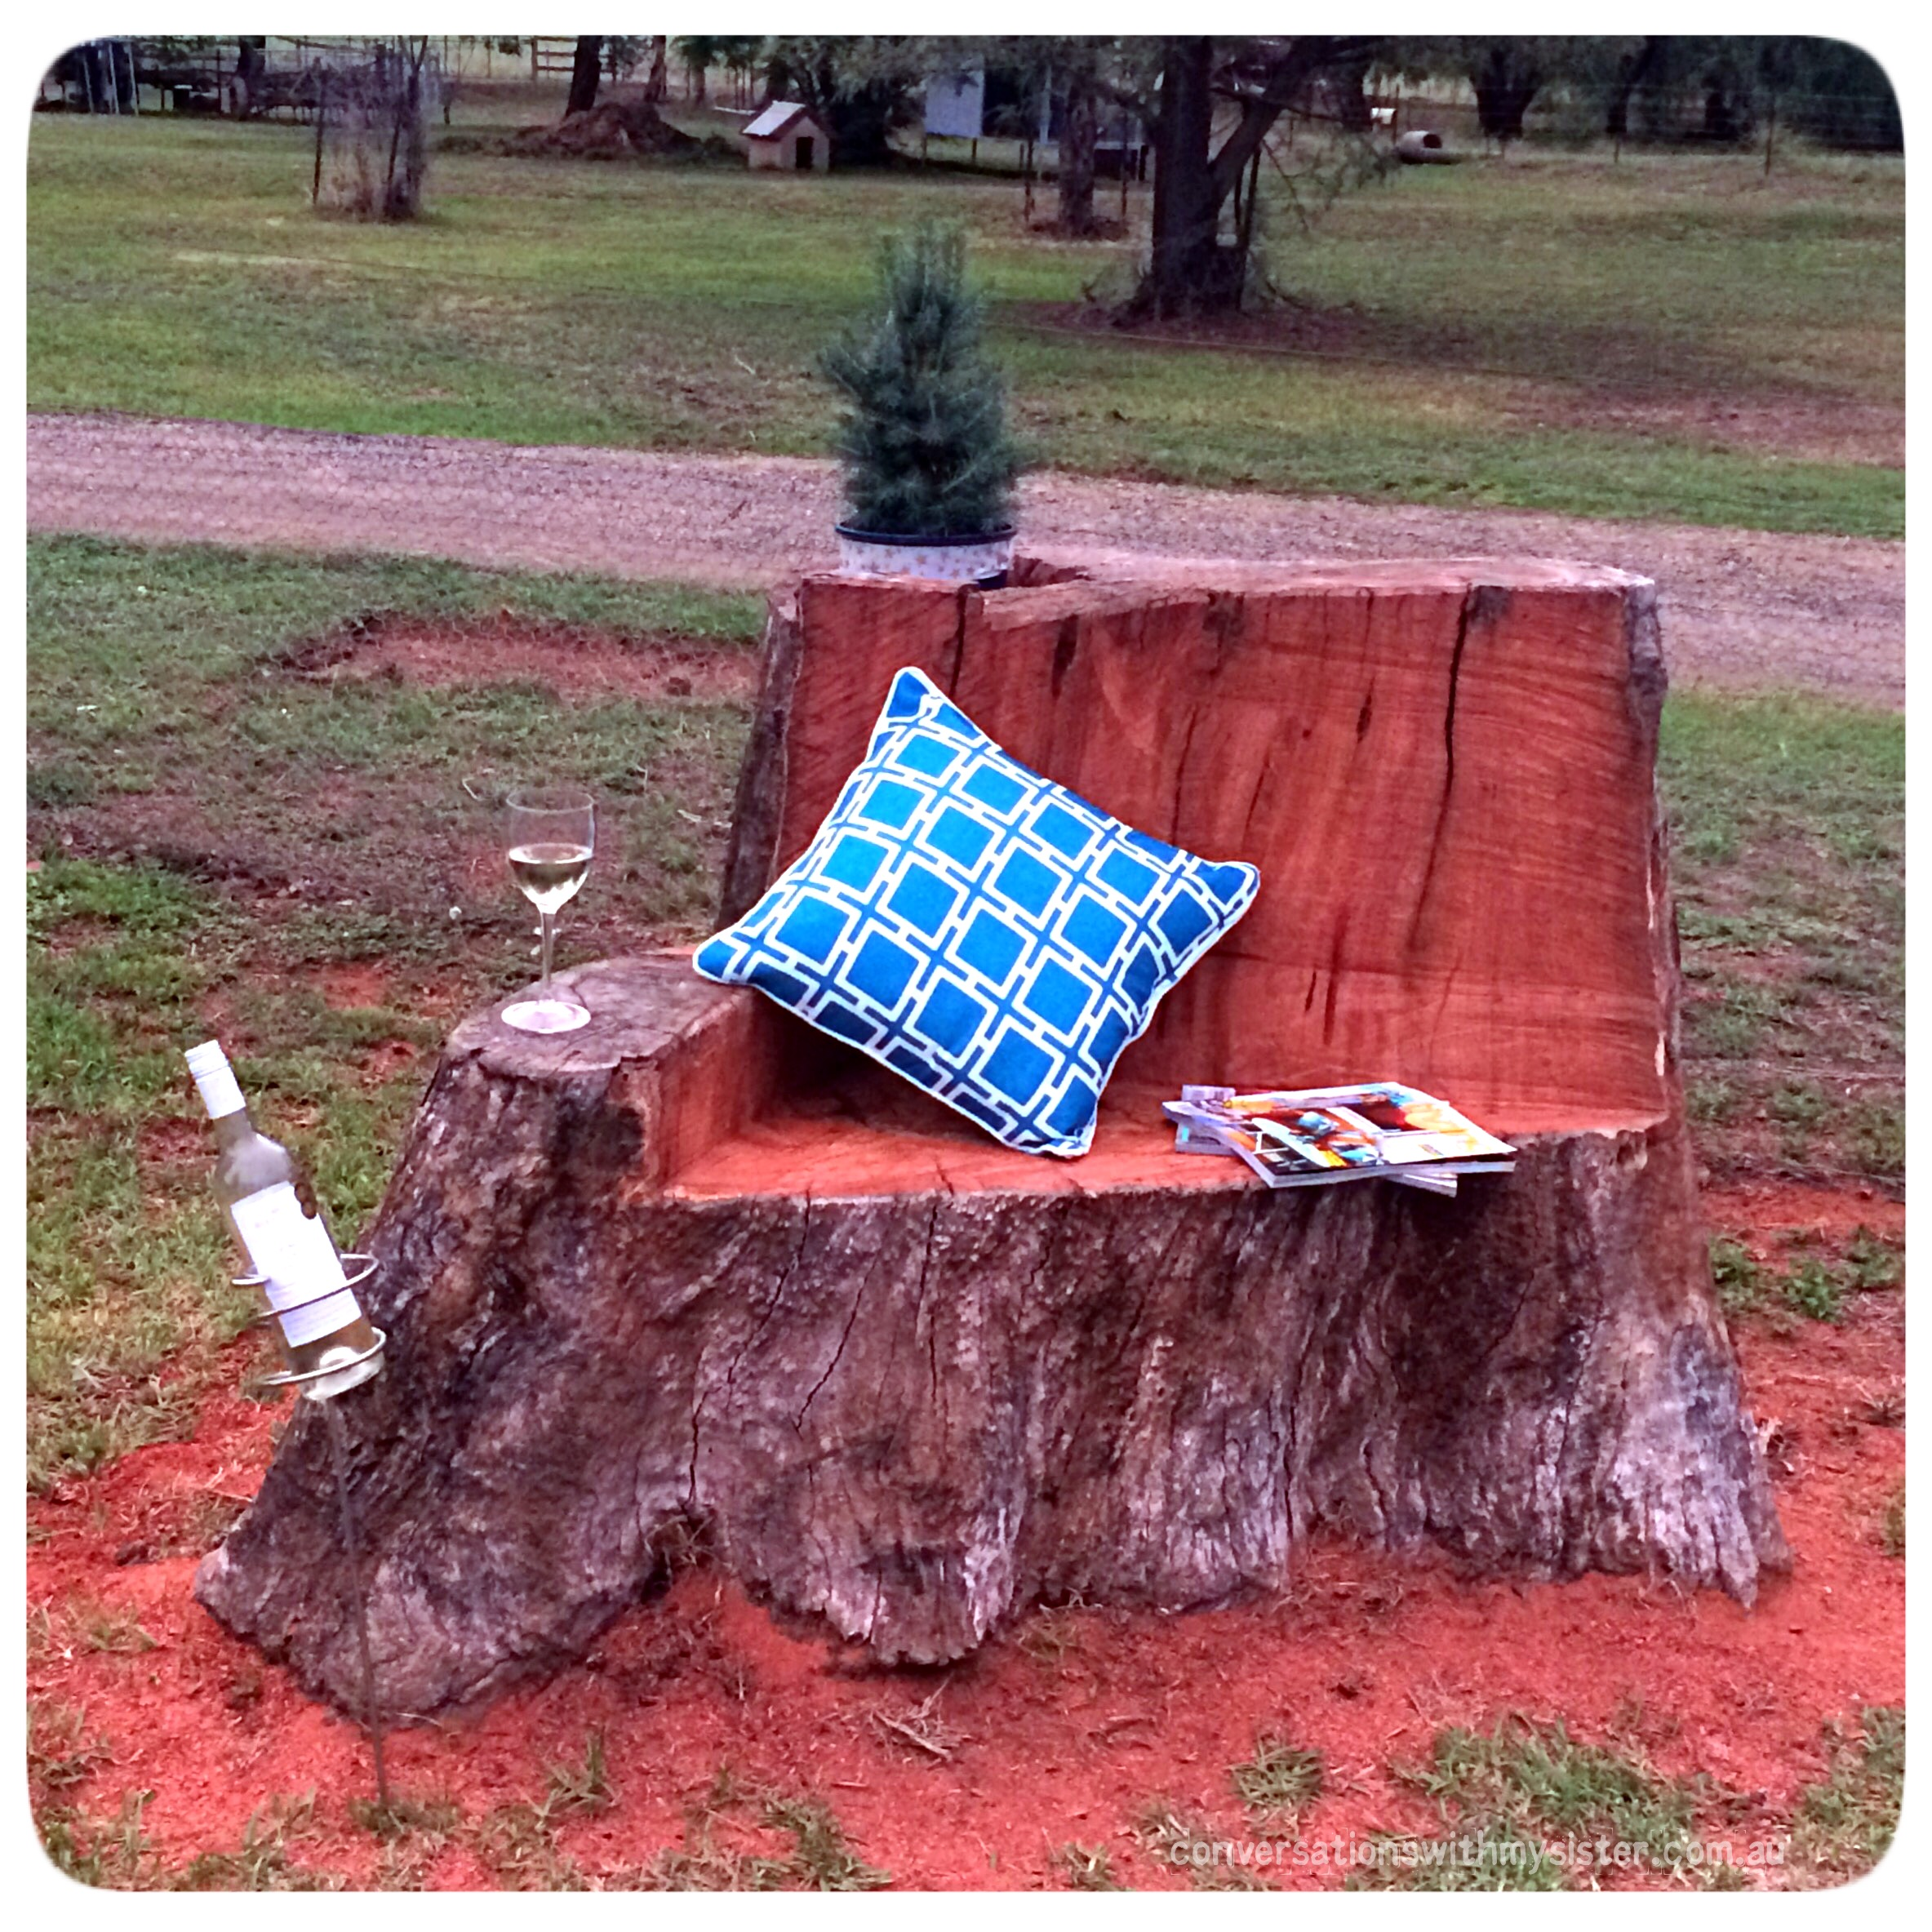 Chainsaw Art Inspiration – A Simple Way to Decorate Your Garden_conversationswithmysister.com.au